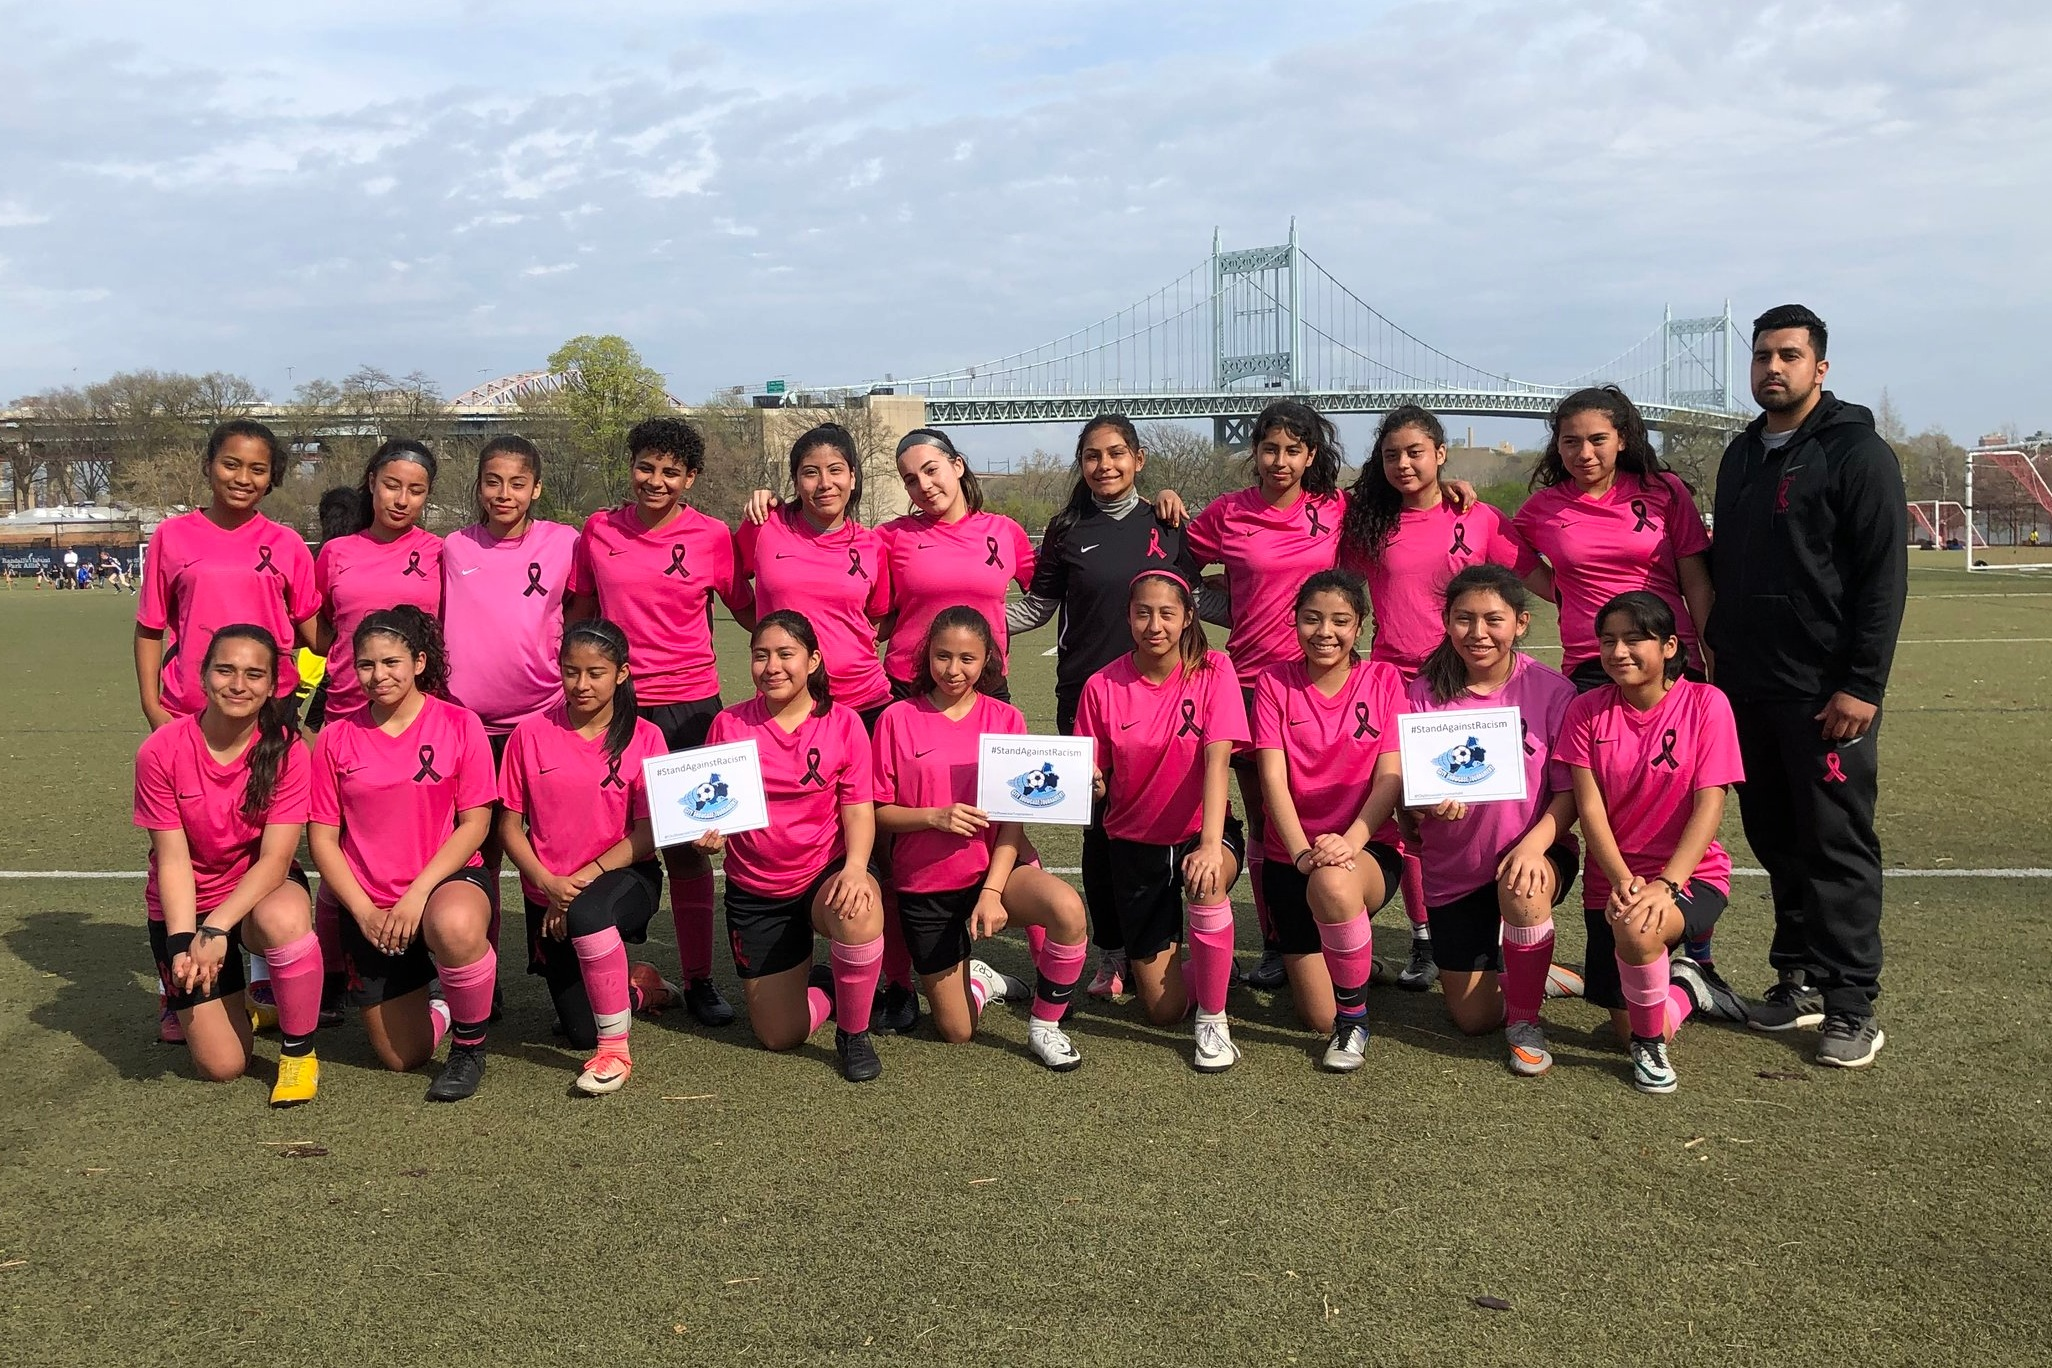 Team Chica's Girls - Global Goal 4 - Quality Education